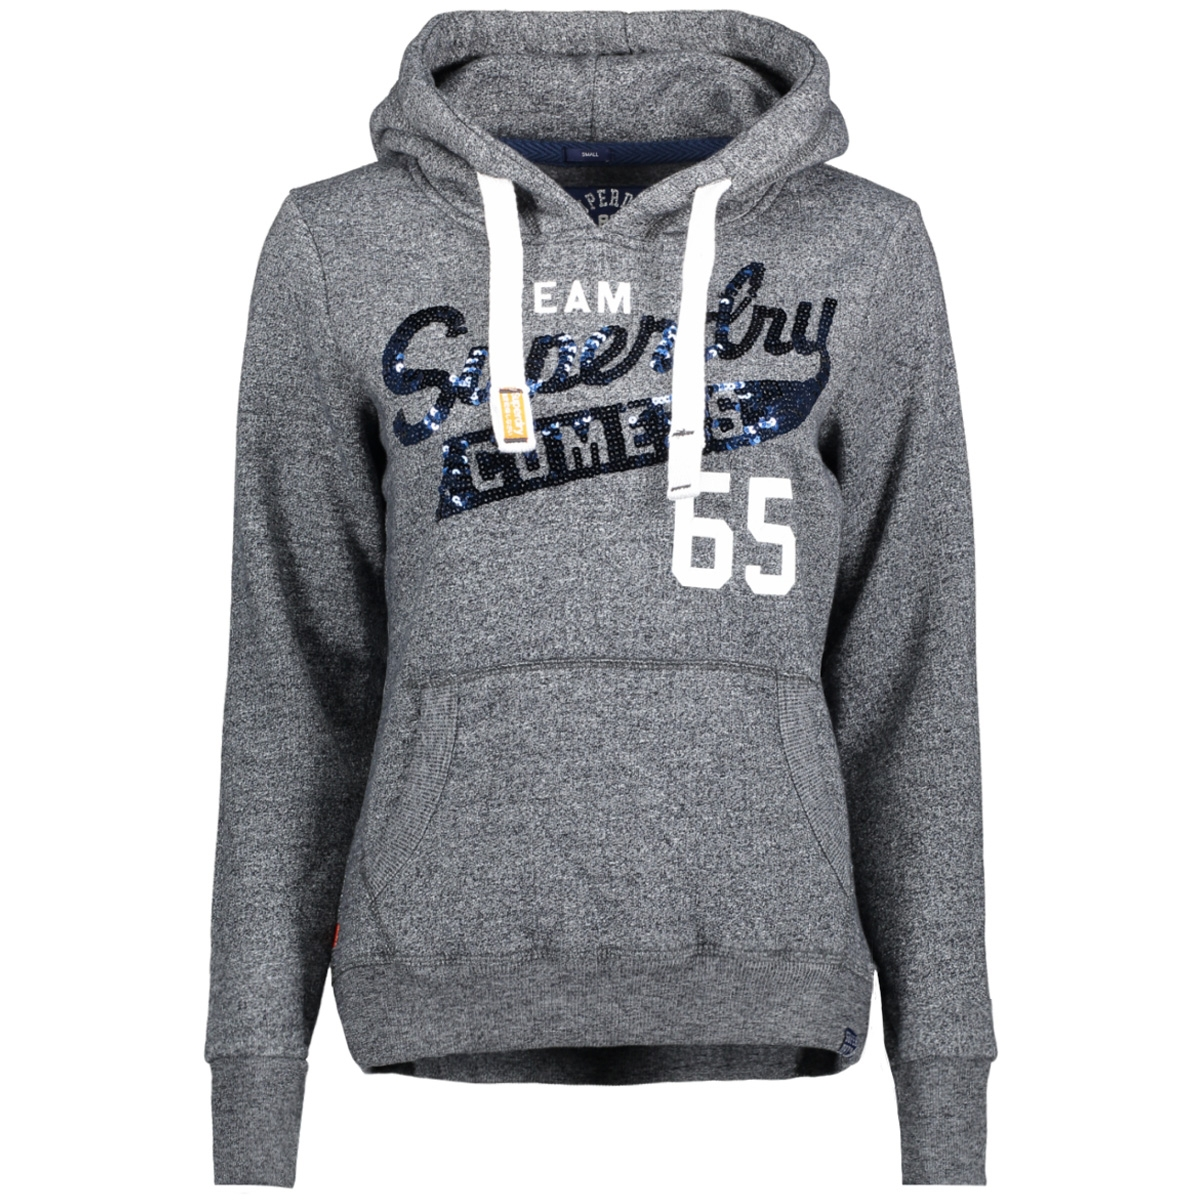 g20025xp team comets hood superdry sweater dyq navy